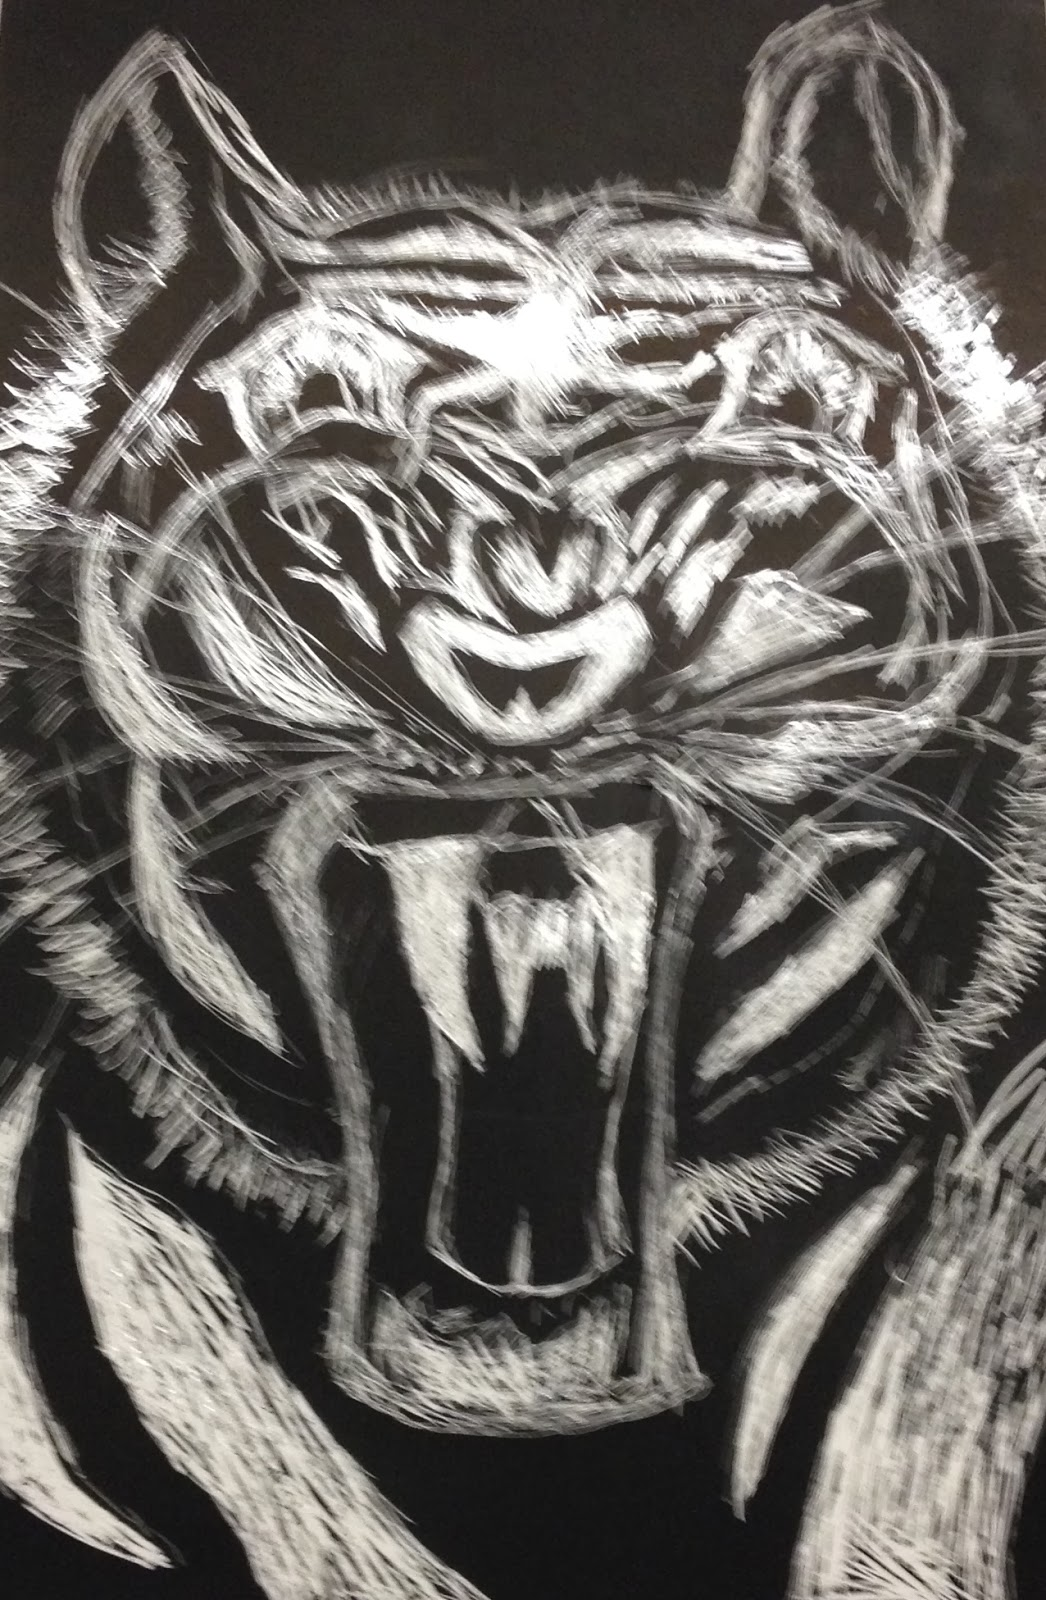 Students Each Chose An Animal Of Interest To Create On The Scratch Art Board Experimented With Hatching Stippling And Cross Techniques